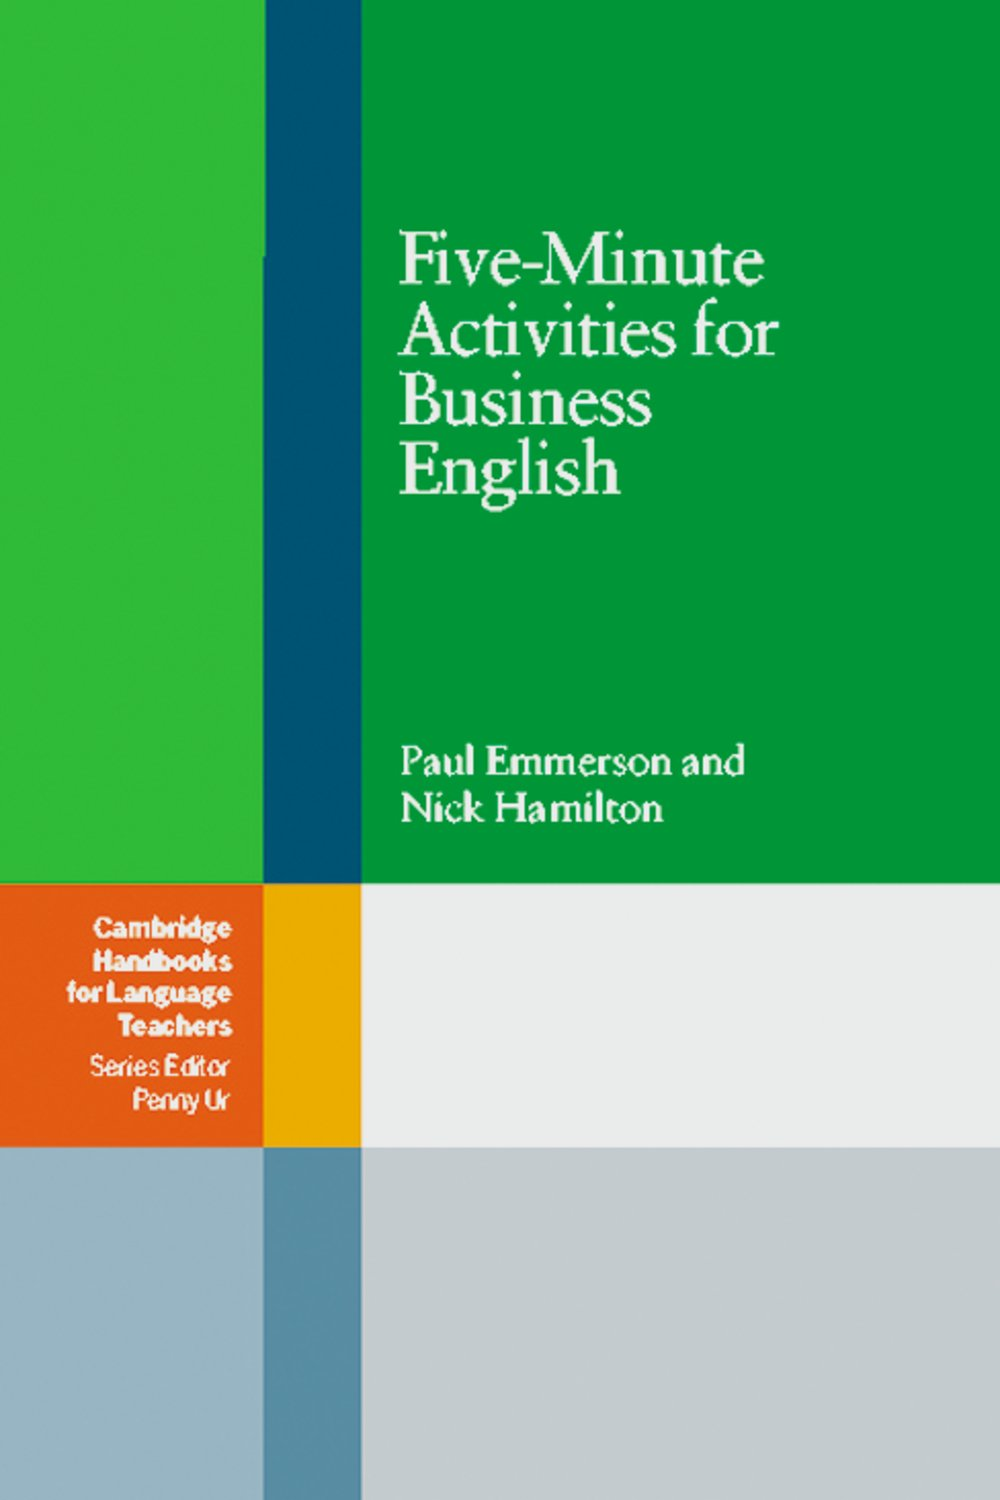 Five Minute Activities for Business English